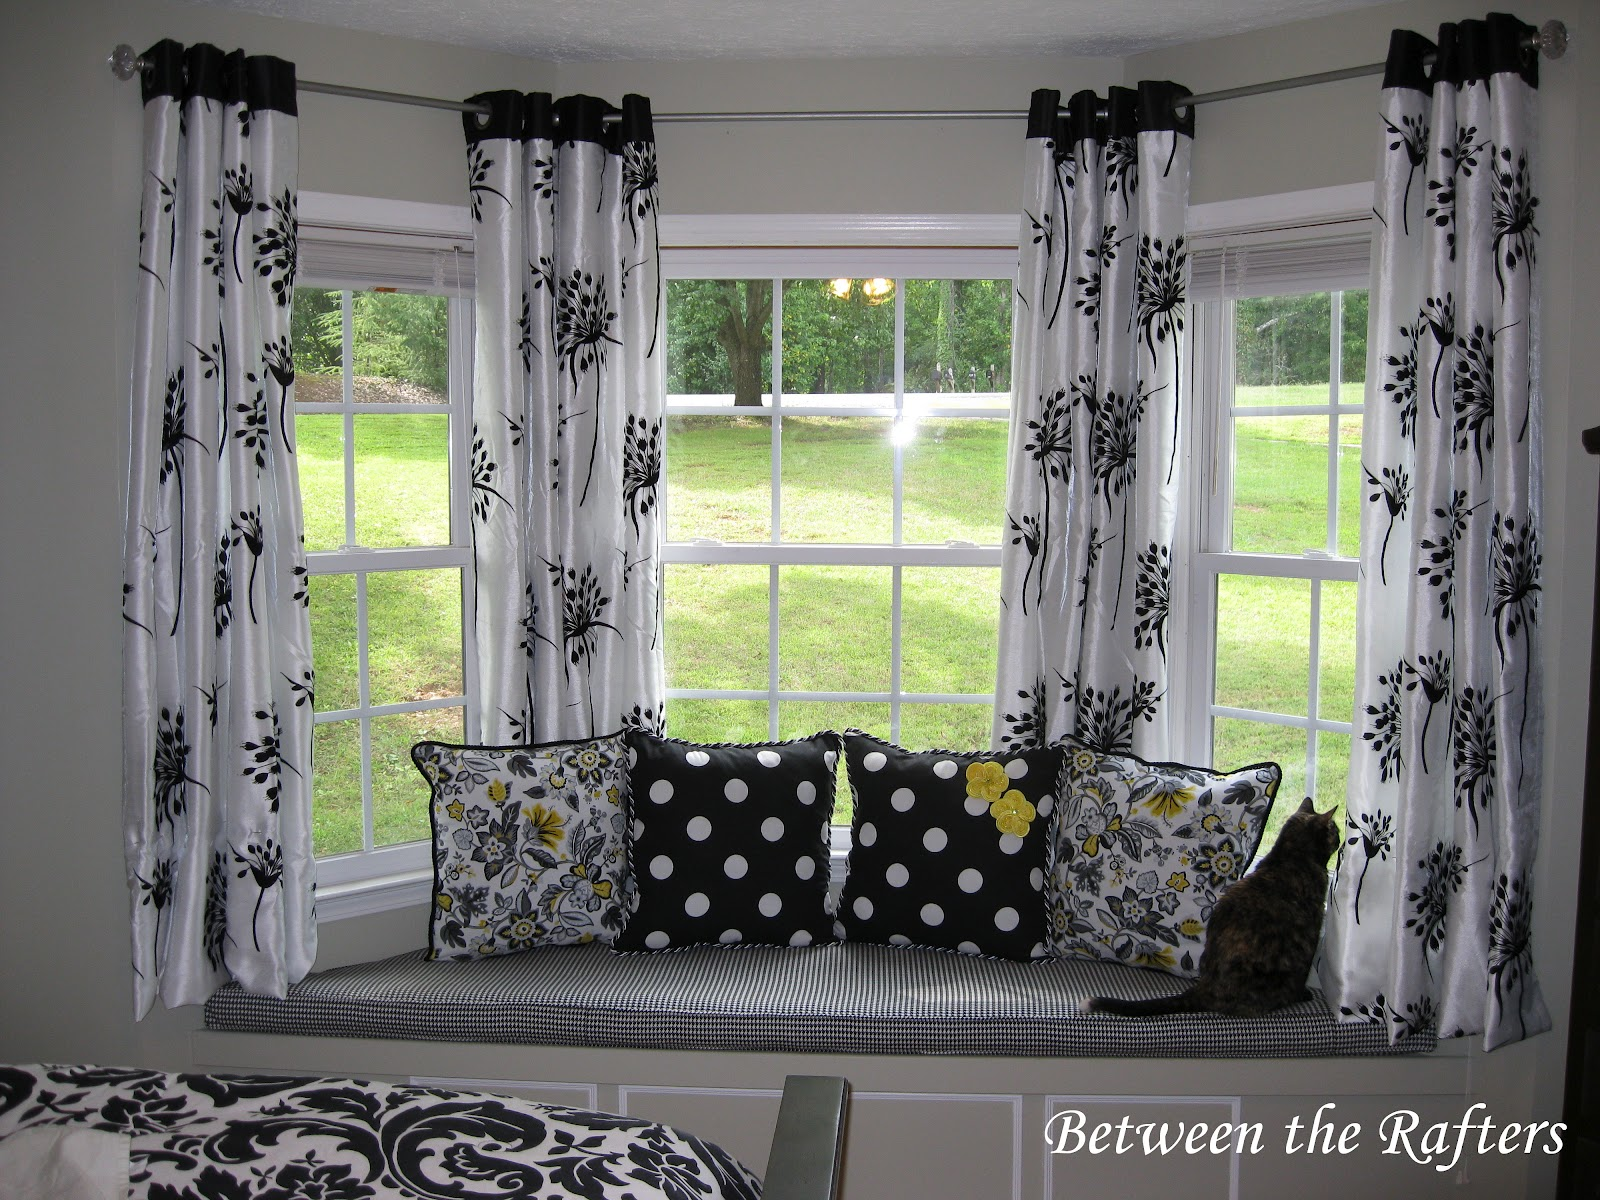 Between the rafters do it yourself bay window curtain rod for Habillage fenetre baie window